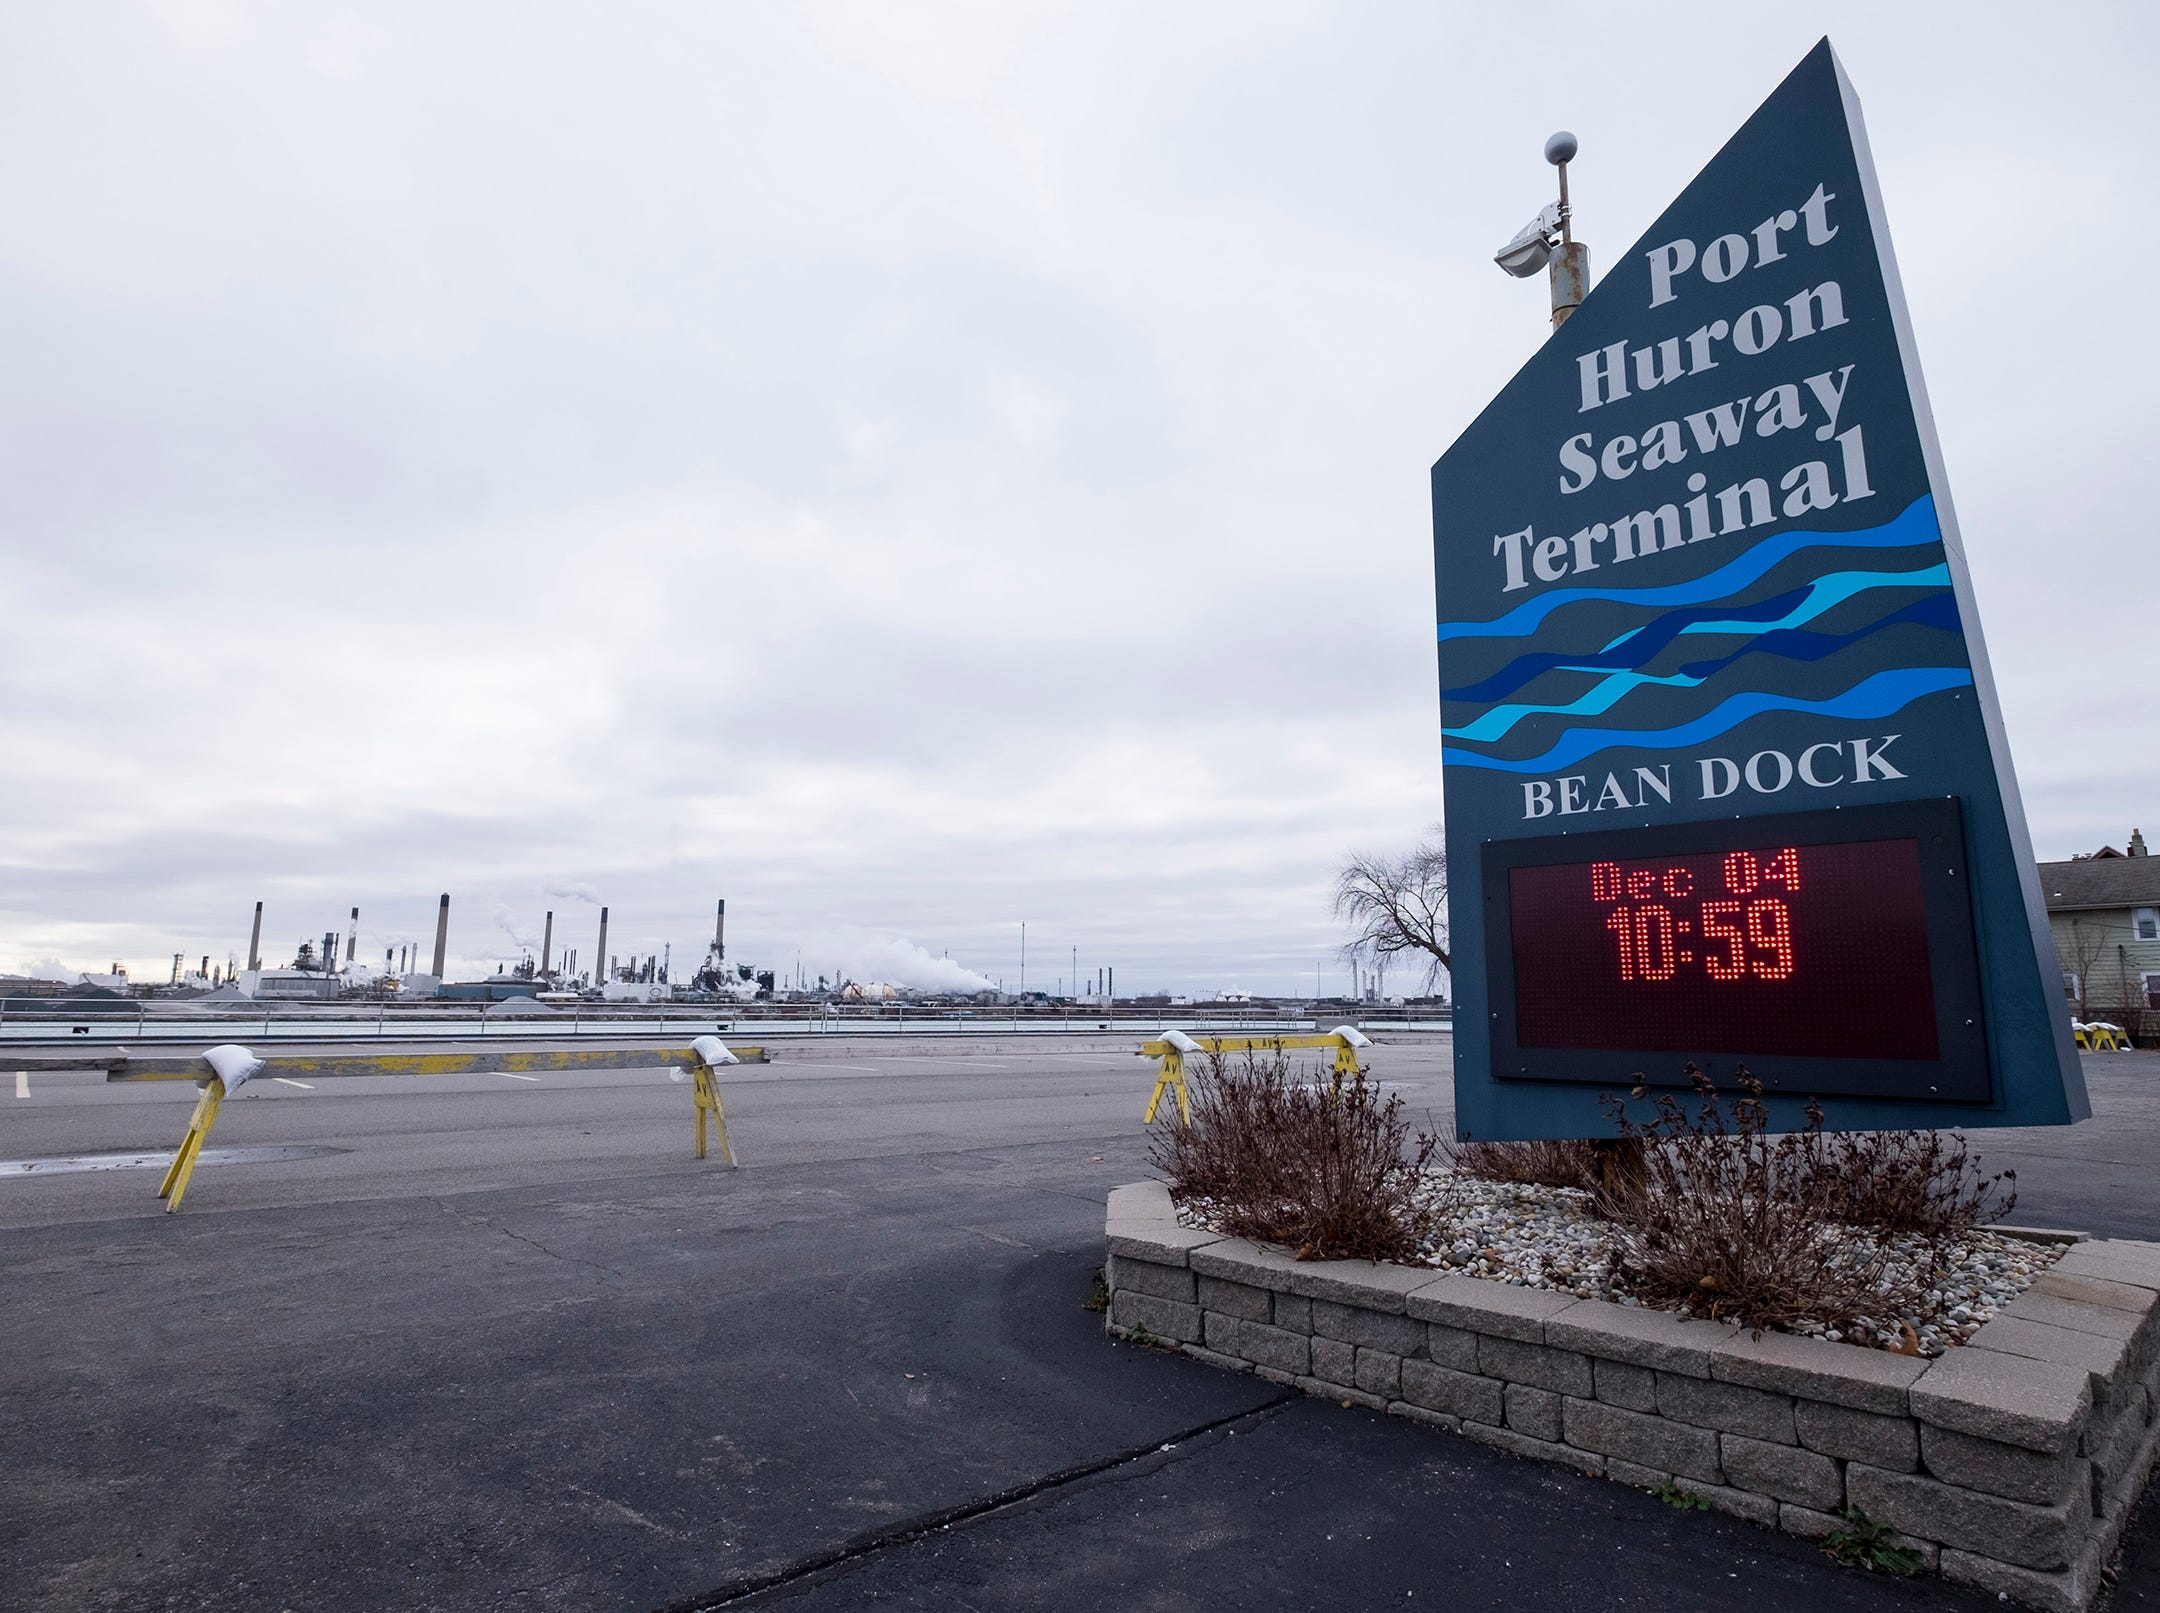 Acheson Ventures has listed several of its properties along the river for sale, including the Seaway Terminal and Bean Dock.